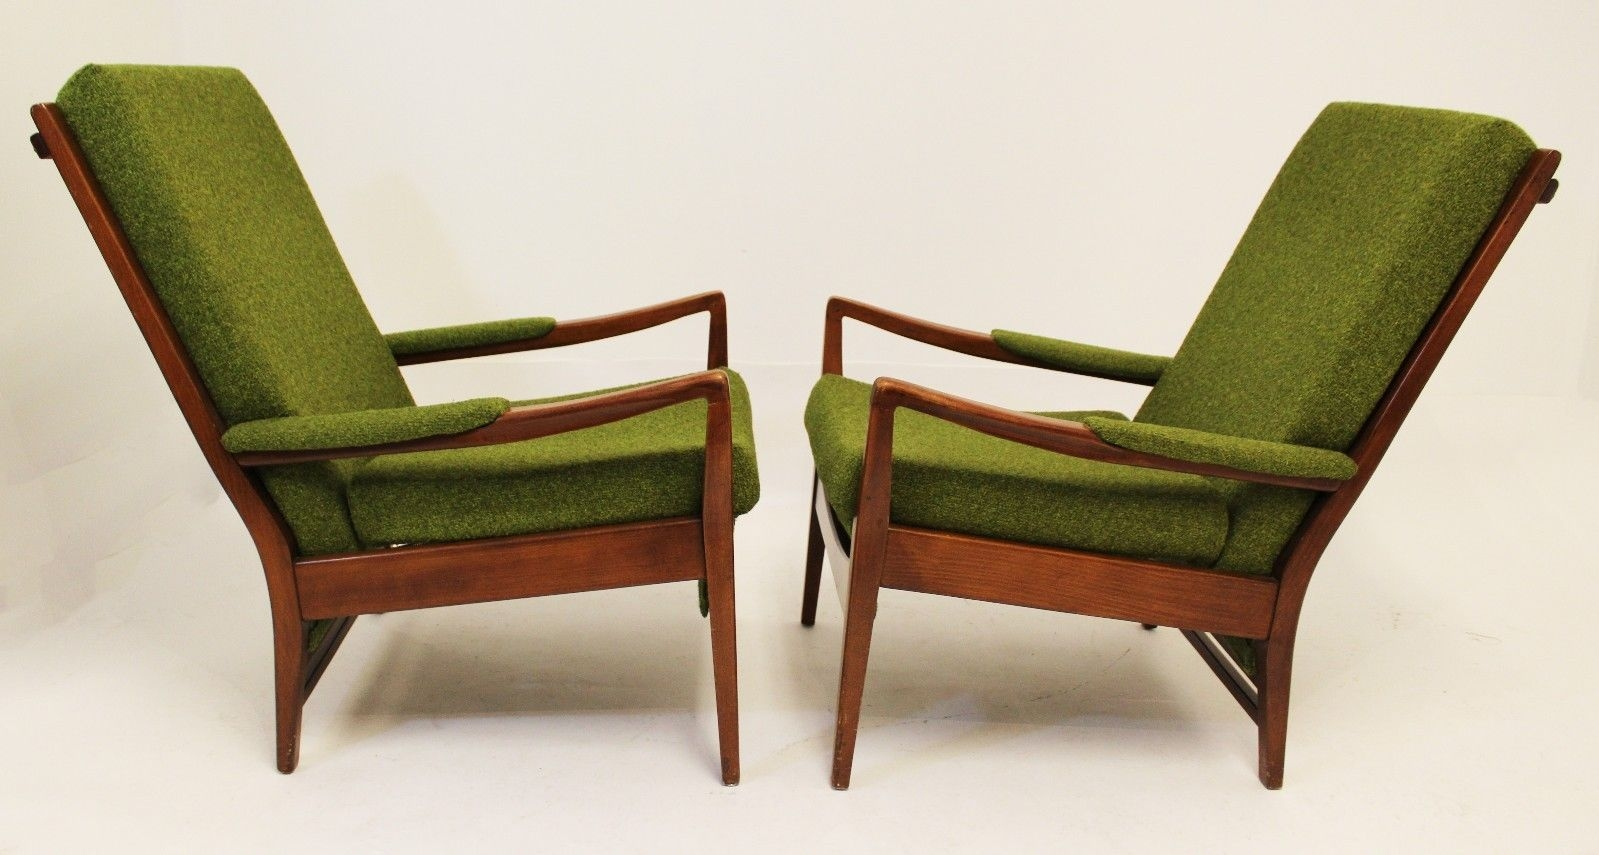 Innovative Premium Cintique Mid Century Armchairs In Mid Century Modern Pair Of Cintique Walnut Chairs English Larsen (Image 11 of 15)